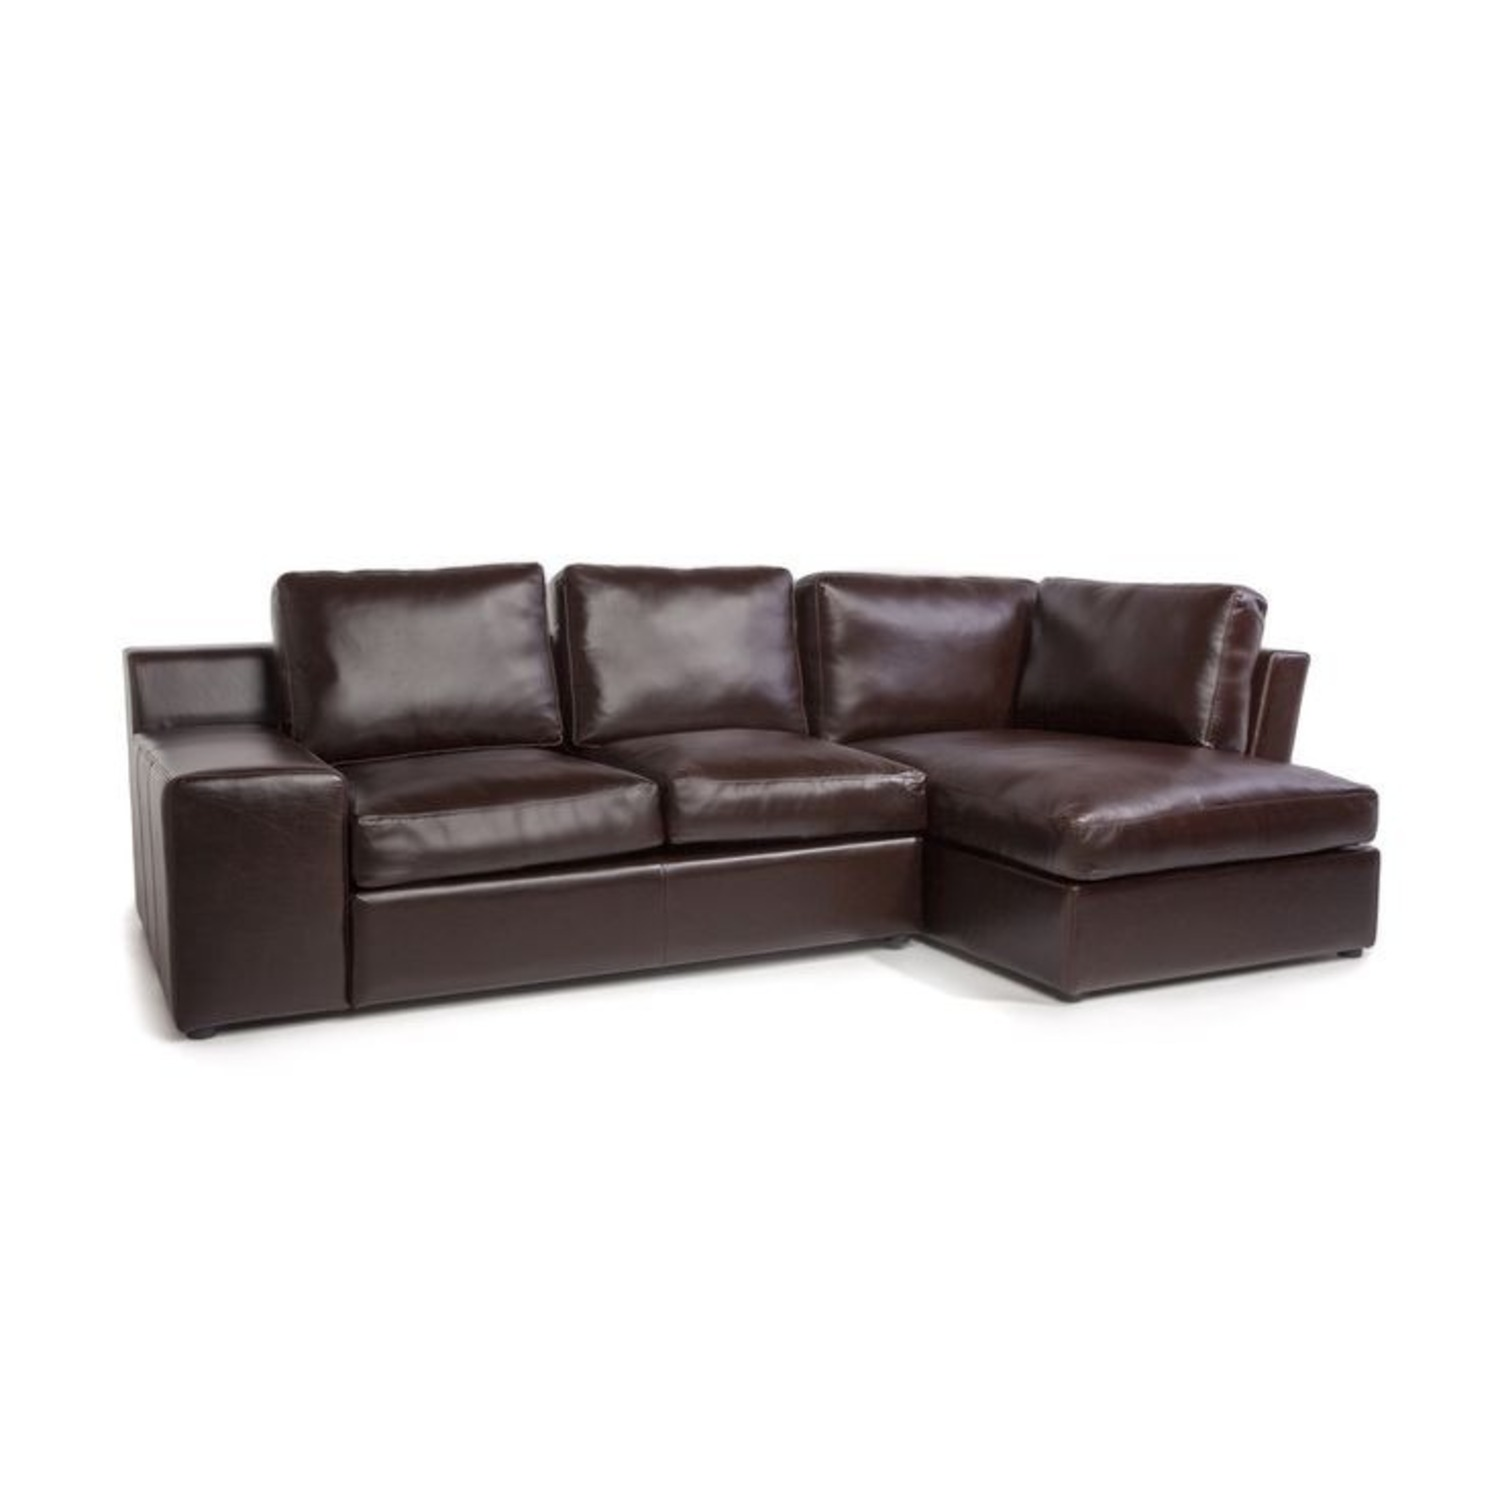 France and Son Leather Sectional Sofa - image-0